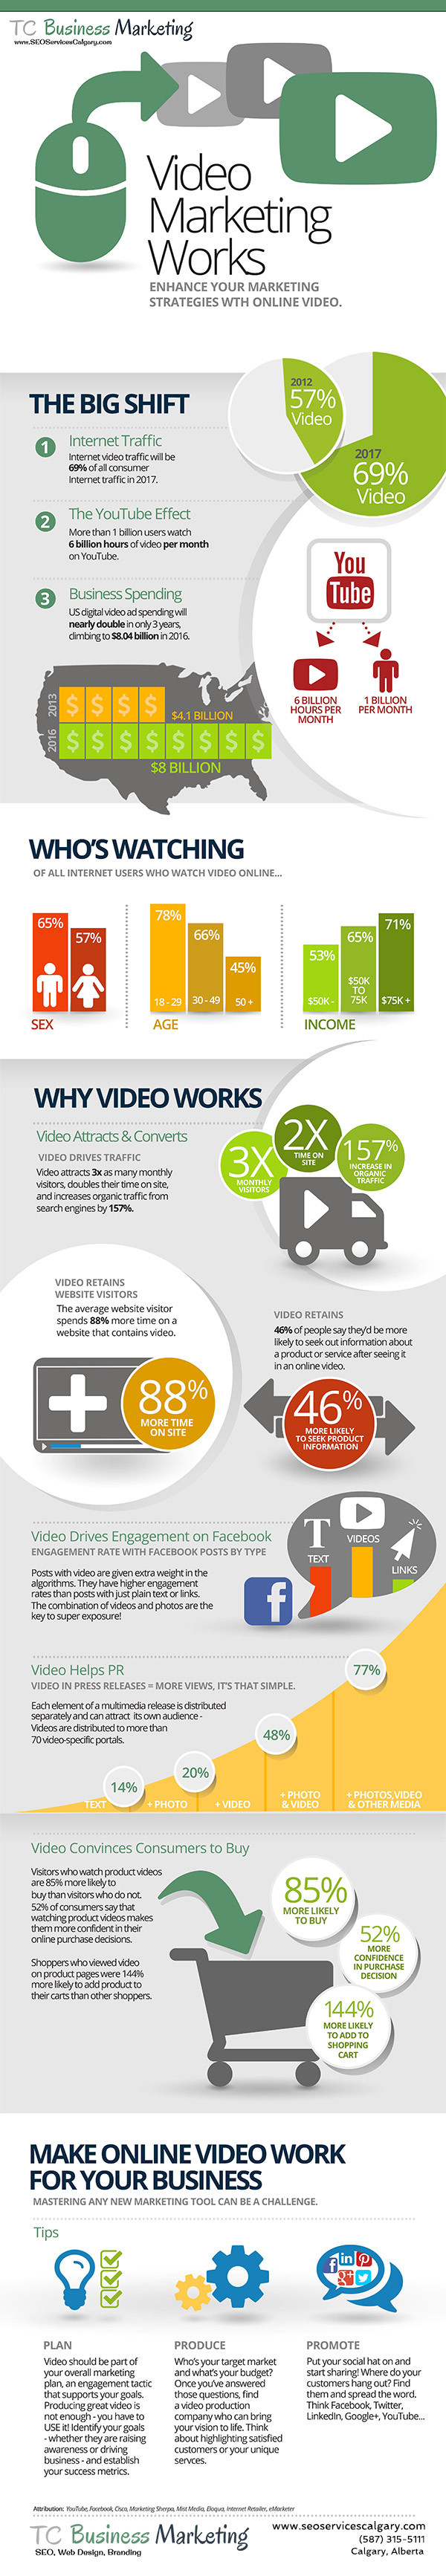 Video-Marketing-Infographic-TC-Business-Marketing